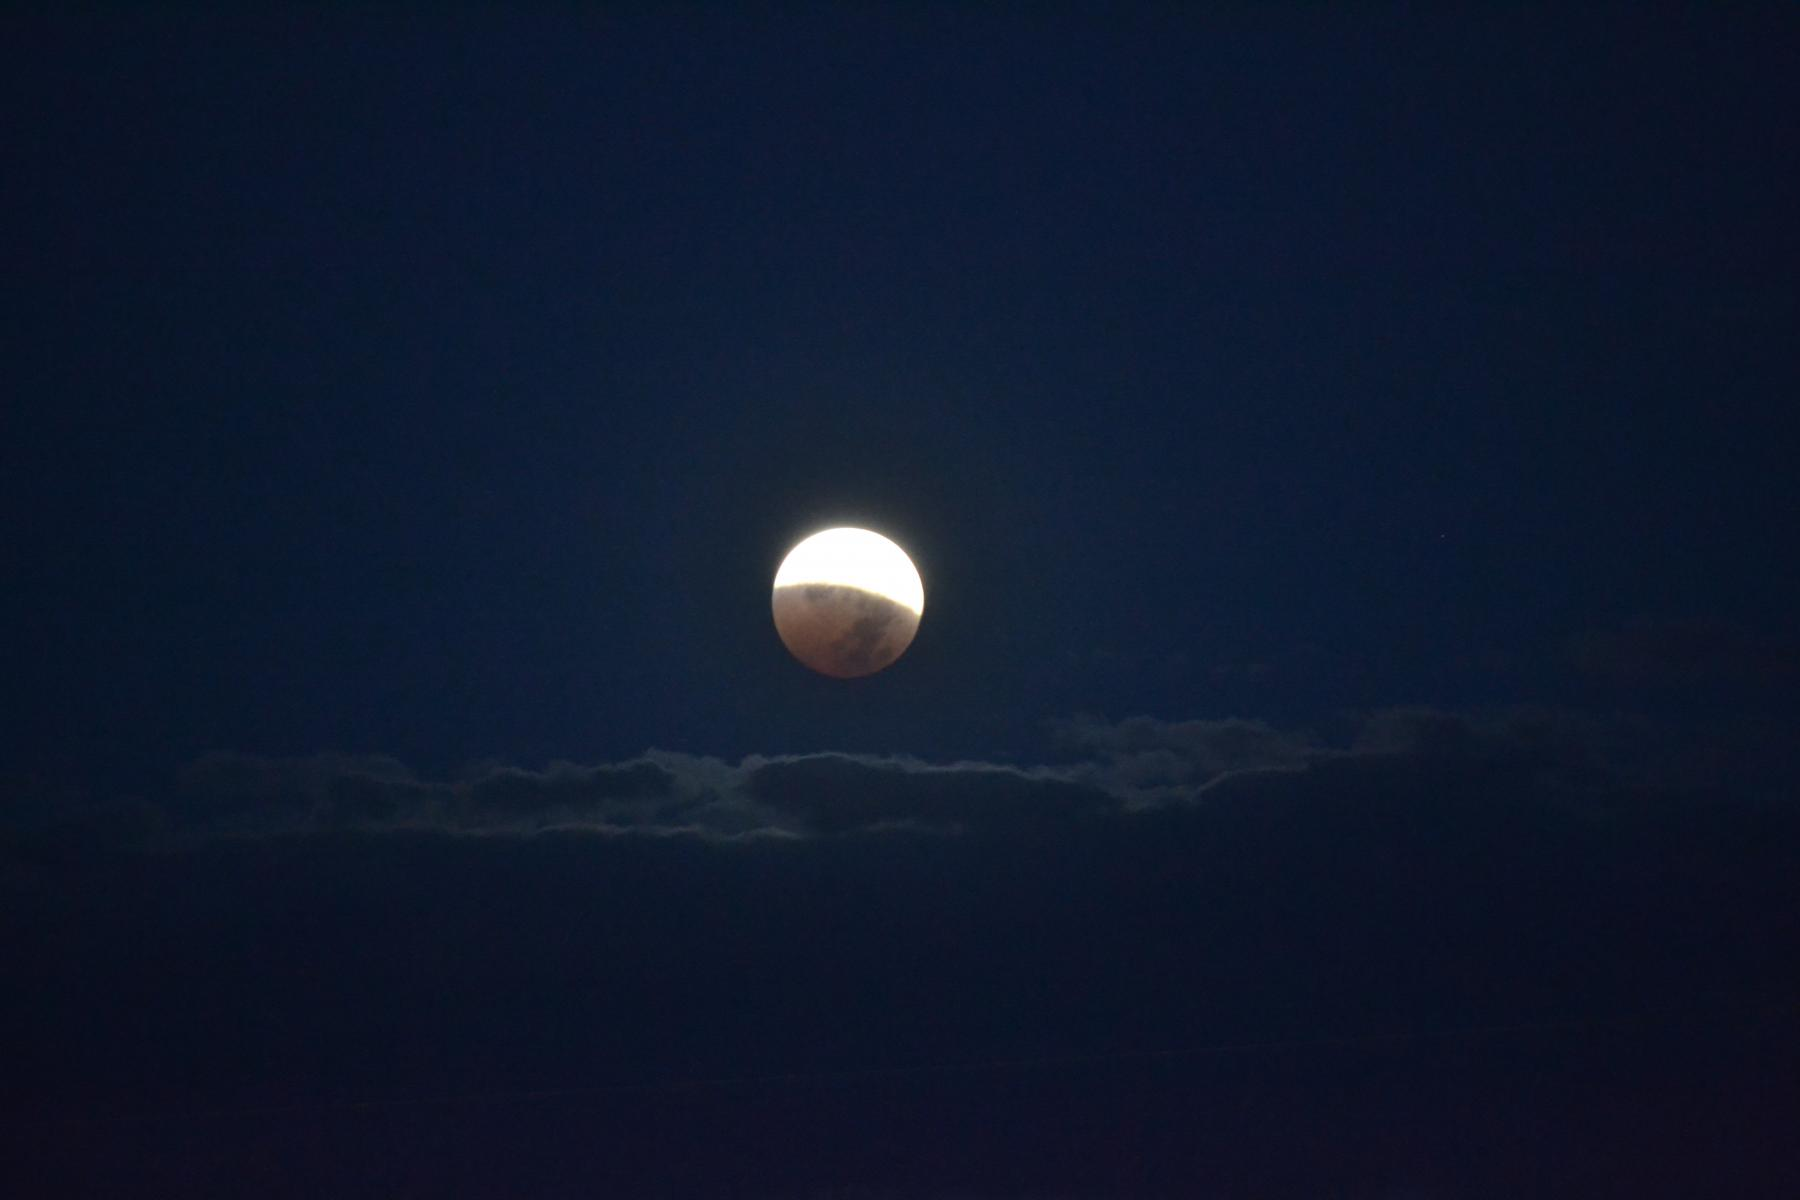 Lunar eclipse viewing event